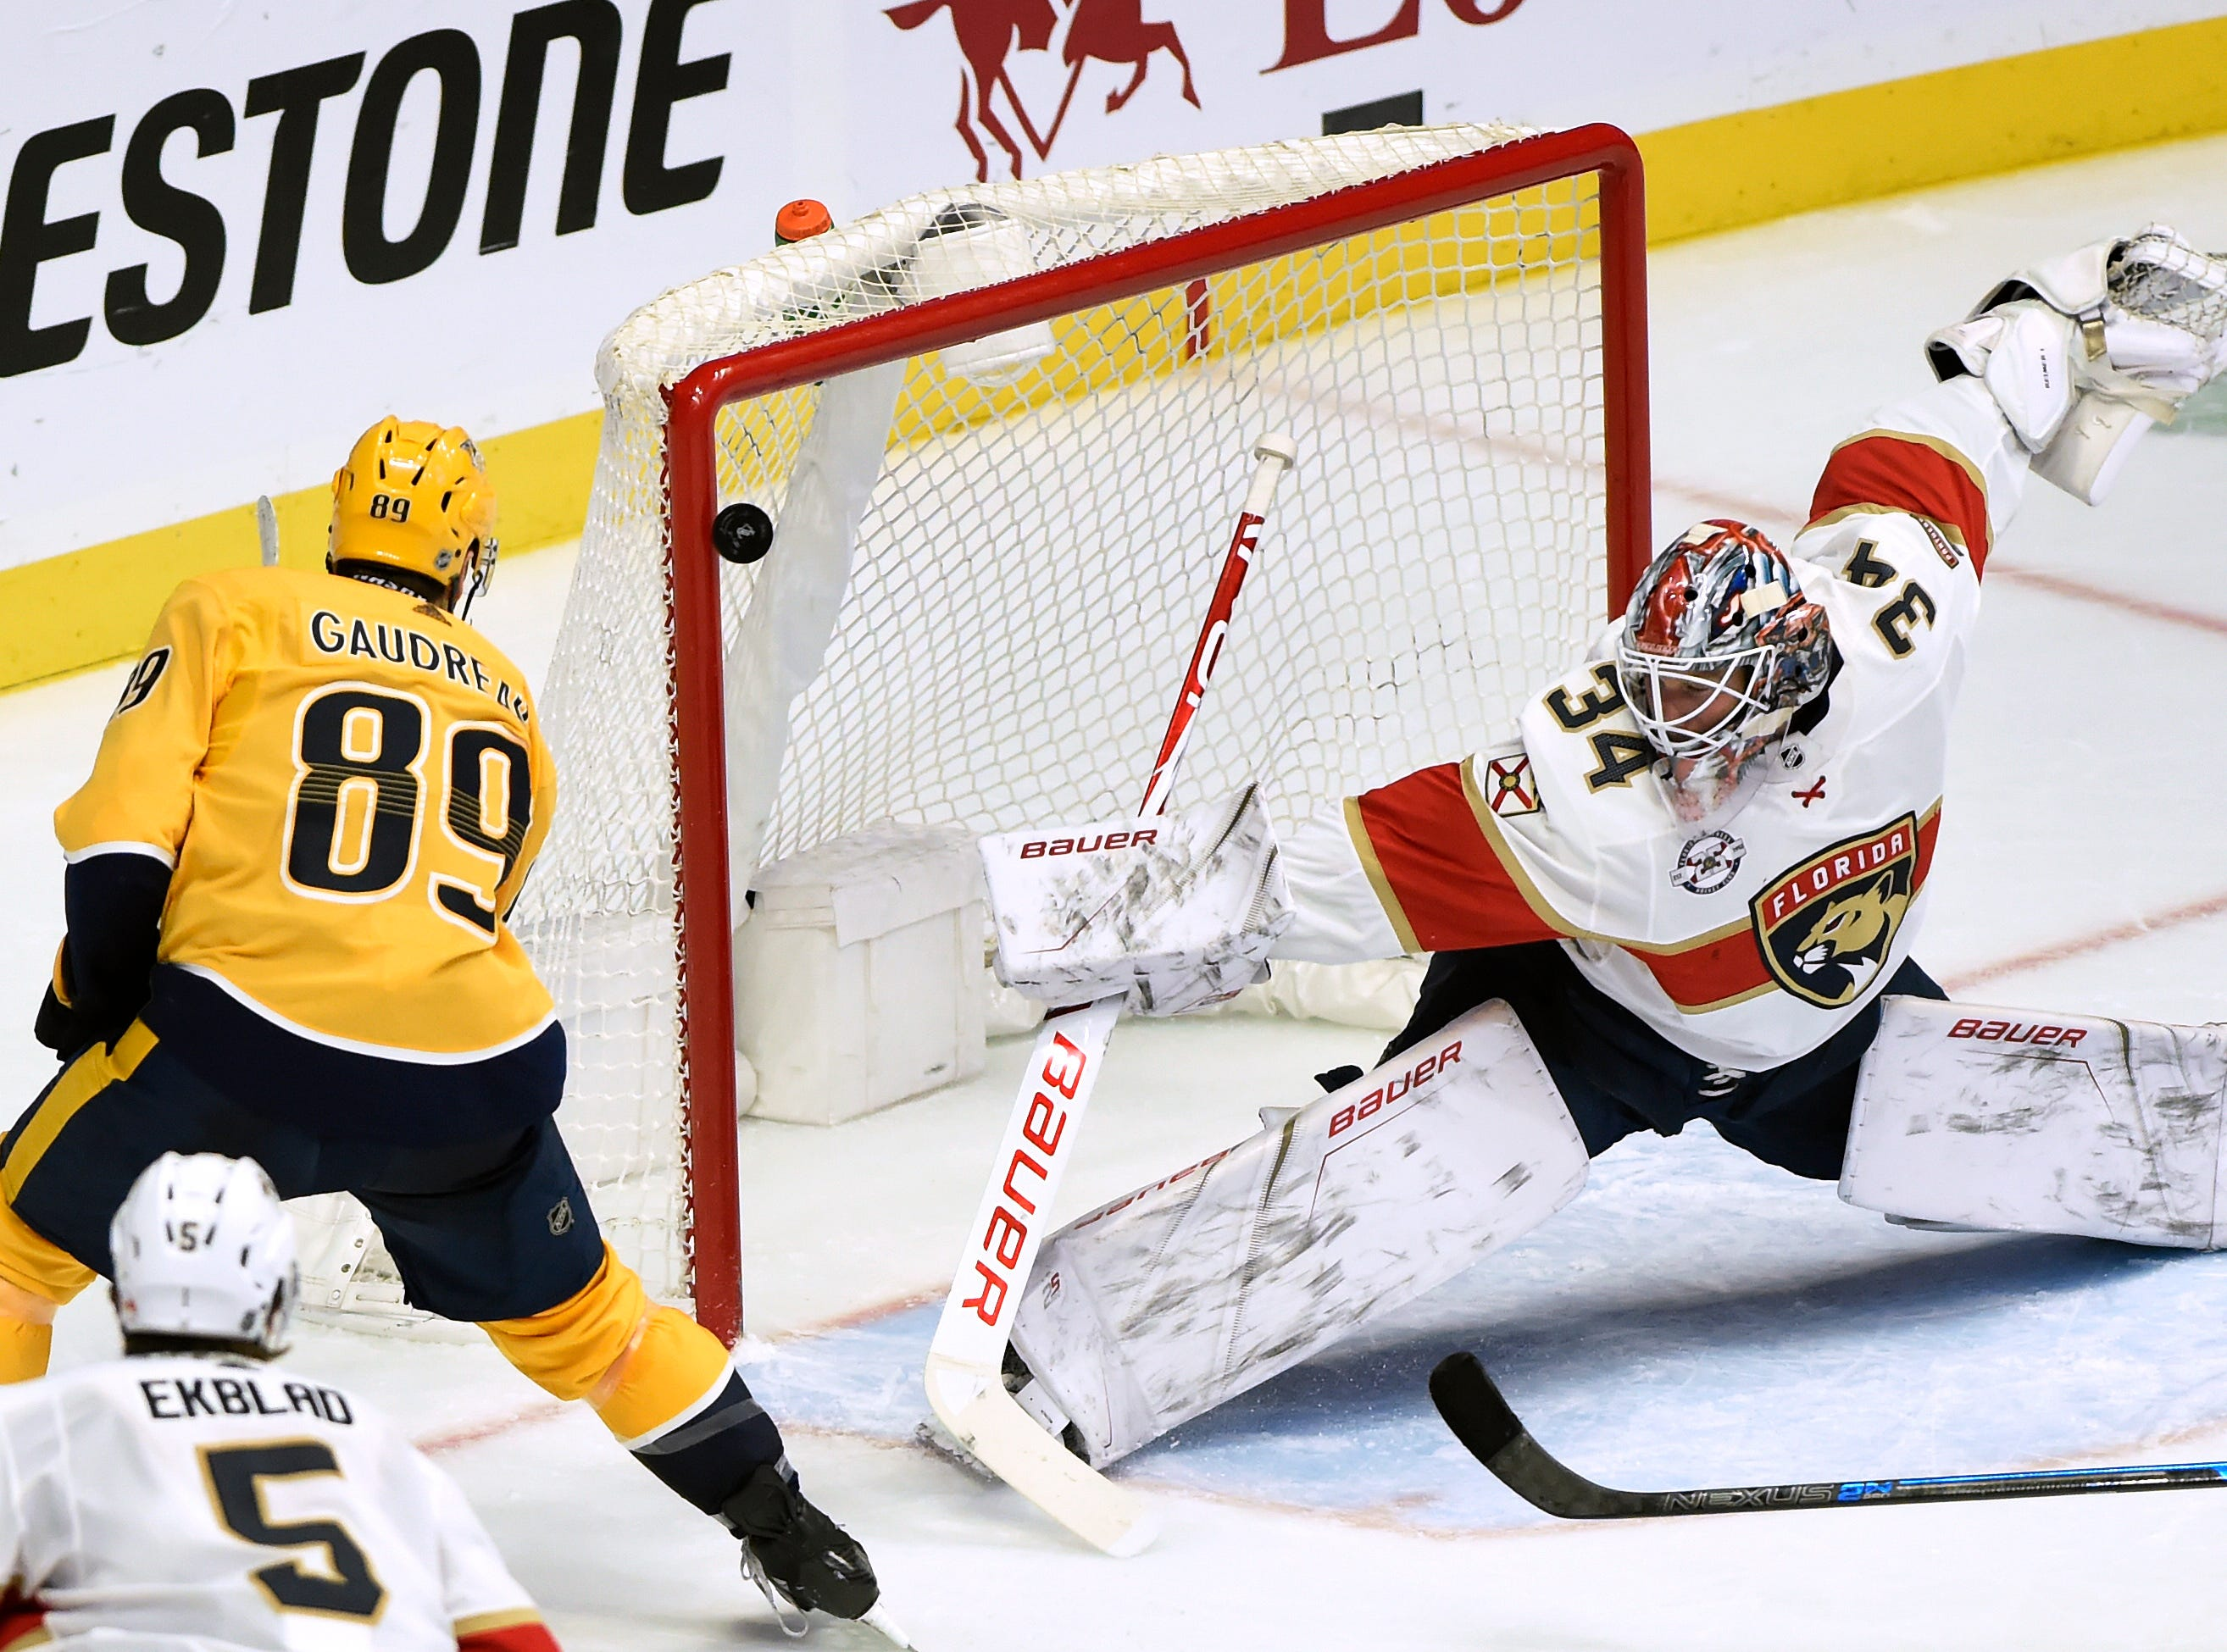 Nashville Predators center Frederick Gaudreau (89) shoots the puck off the goal post as Florida Panthers goaltender James Reimer (34) defends during the second period of an NHL hockey game Saturday, Jan. 19, 2019, in Nashville, Tenn.